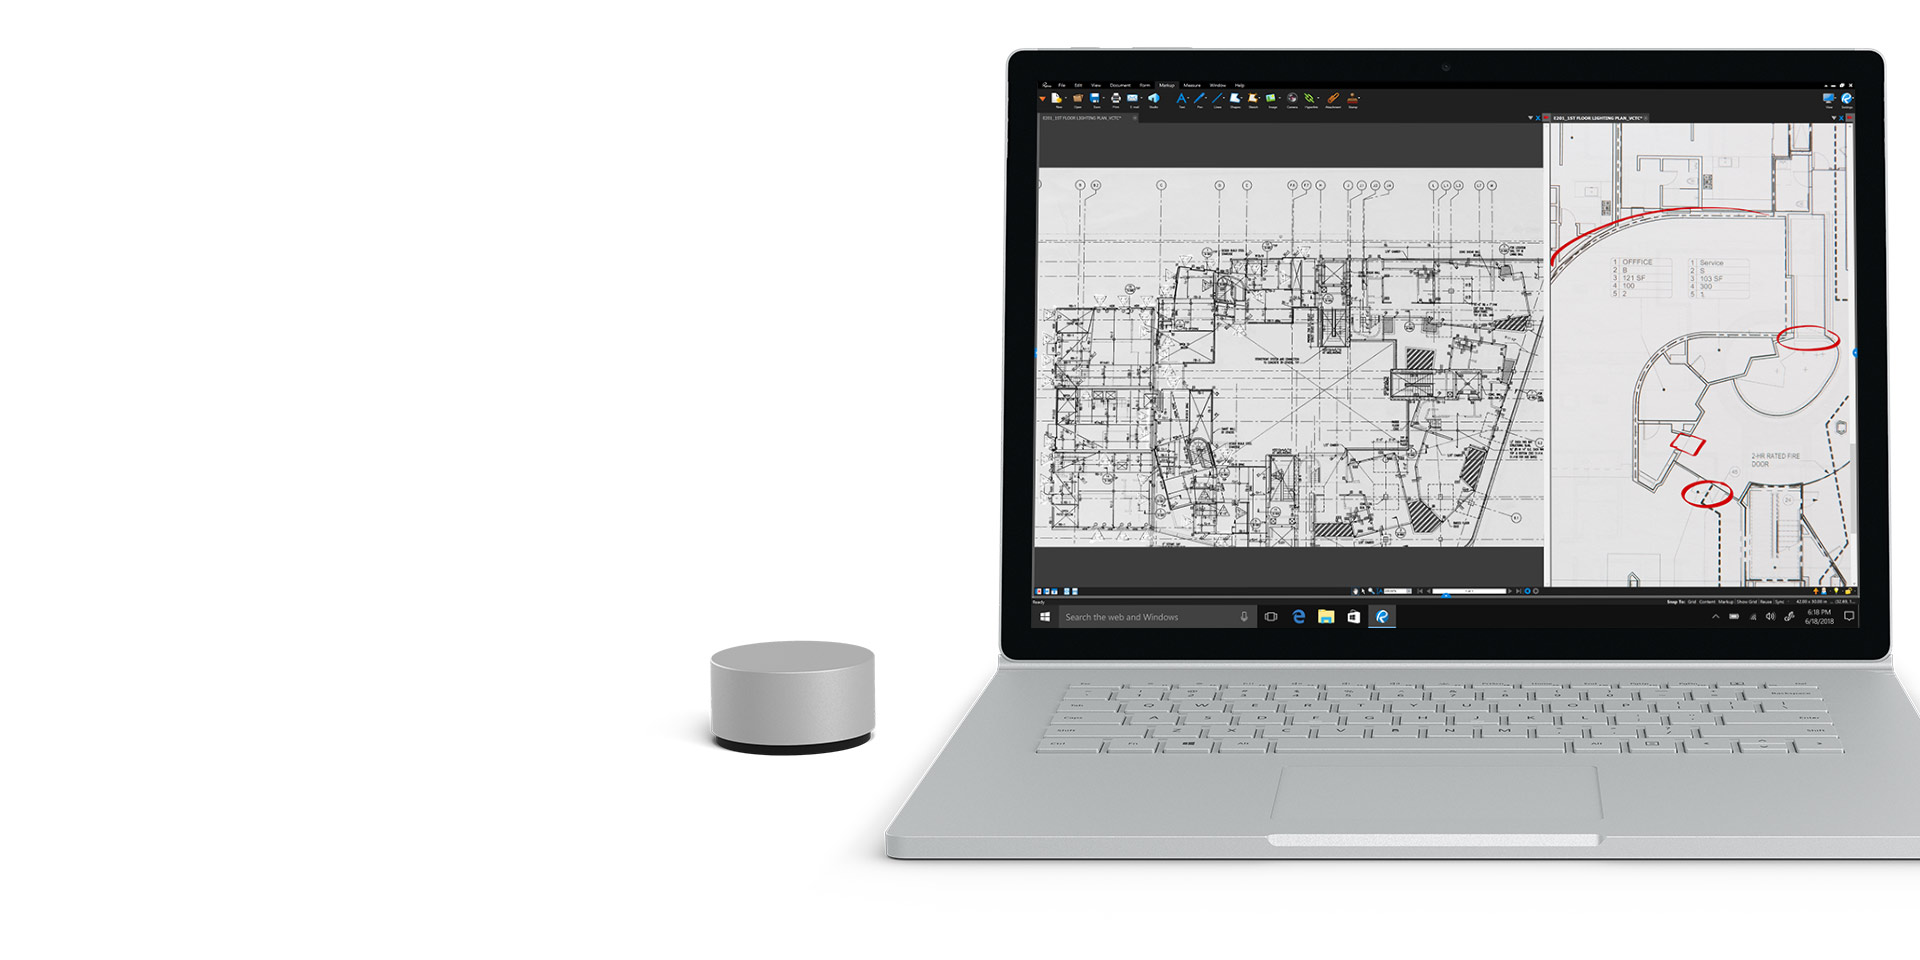 Surface Book 2-Display mit geöffnetem Bluebeam